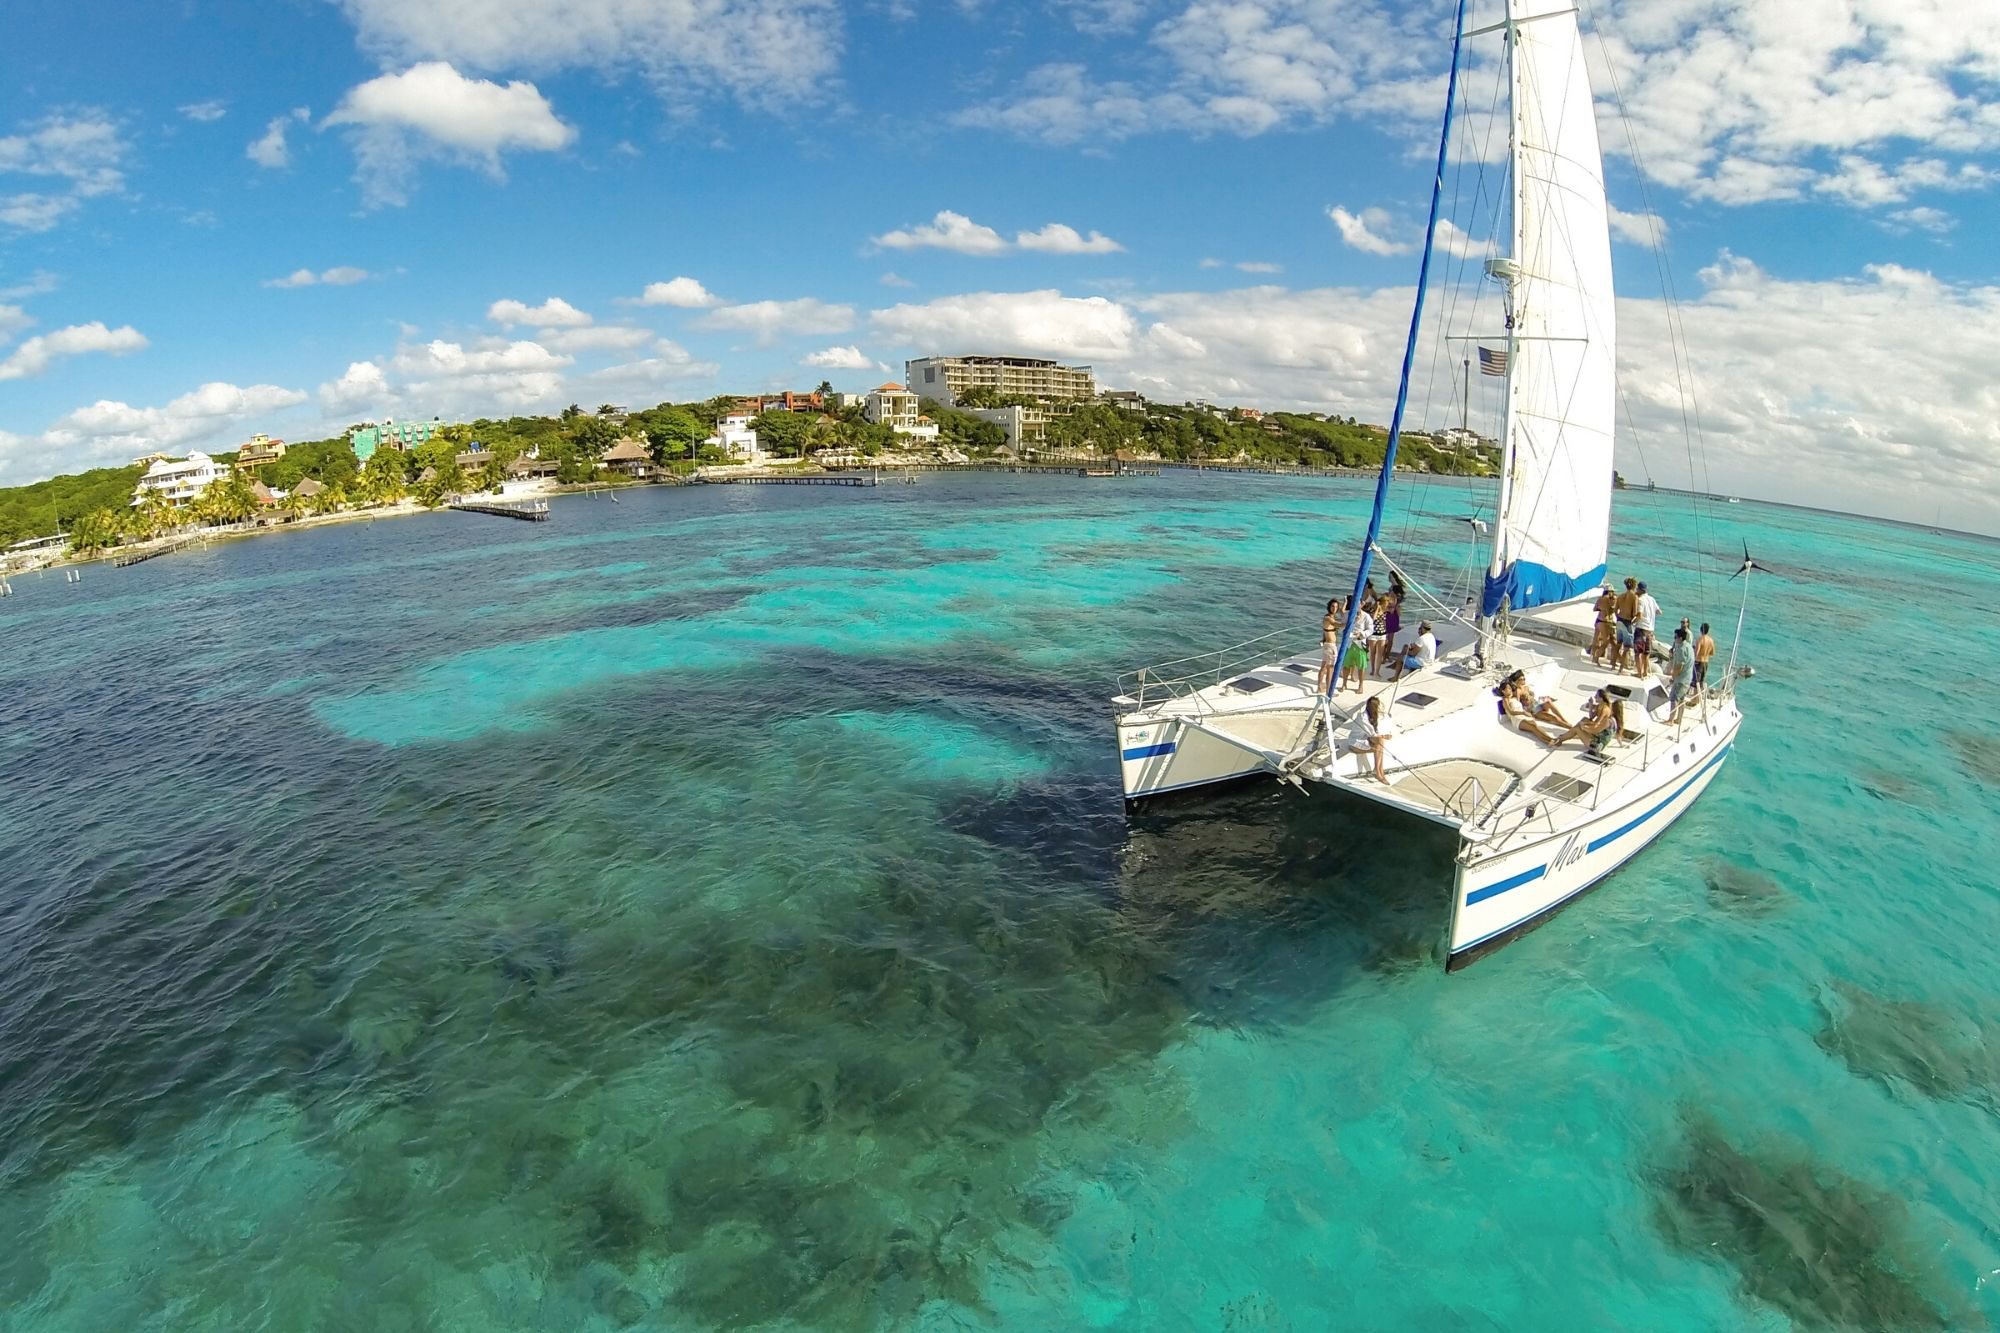 2 Max - Private tour to Isla Mujeres in catamaran - Cancun Sailing